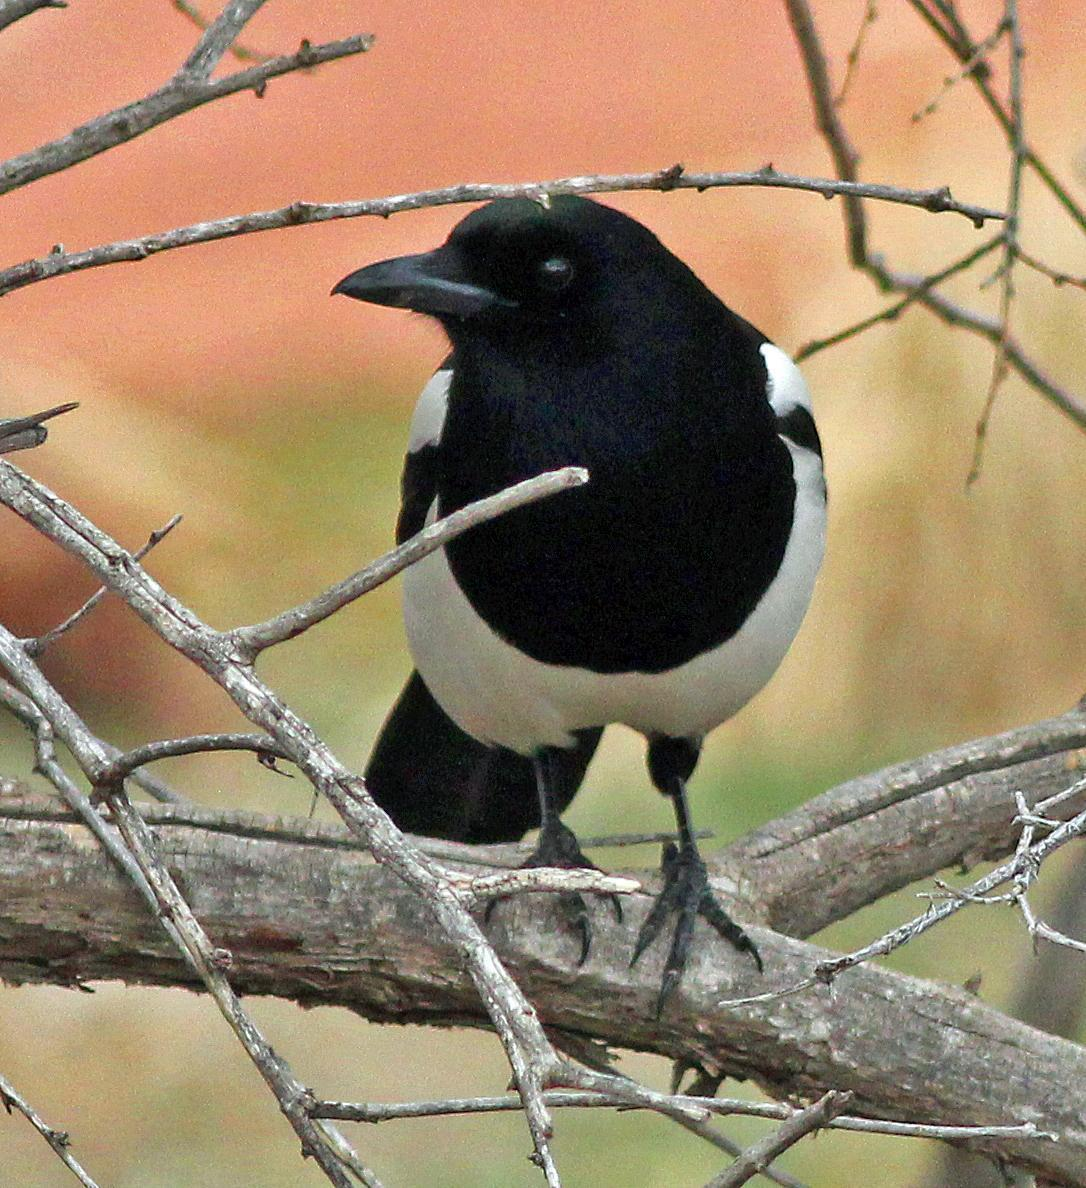 Black-billed Magpie Photo by Tom Gannon